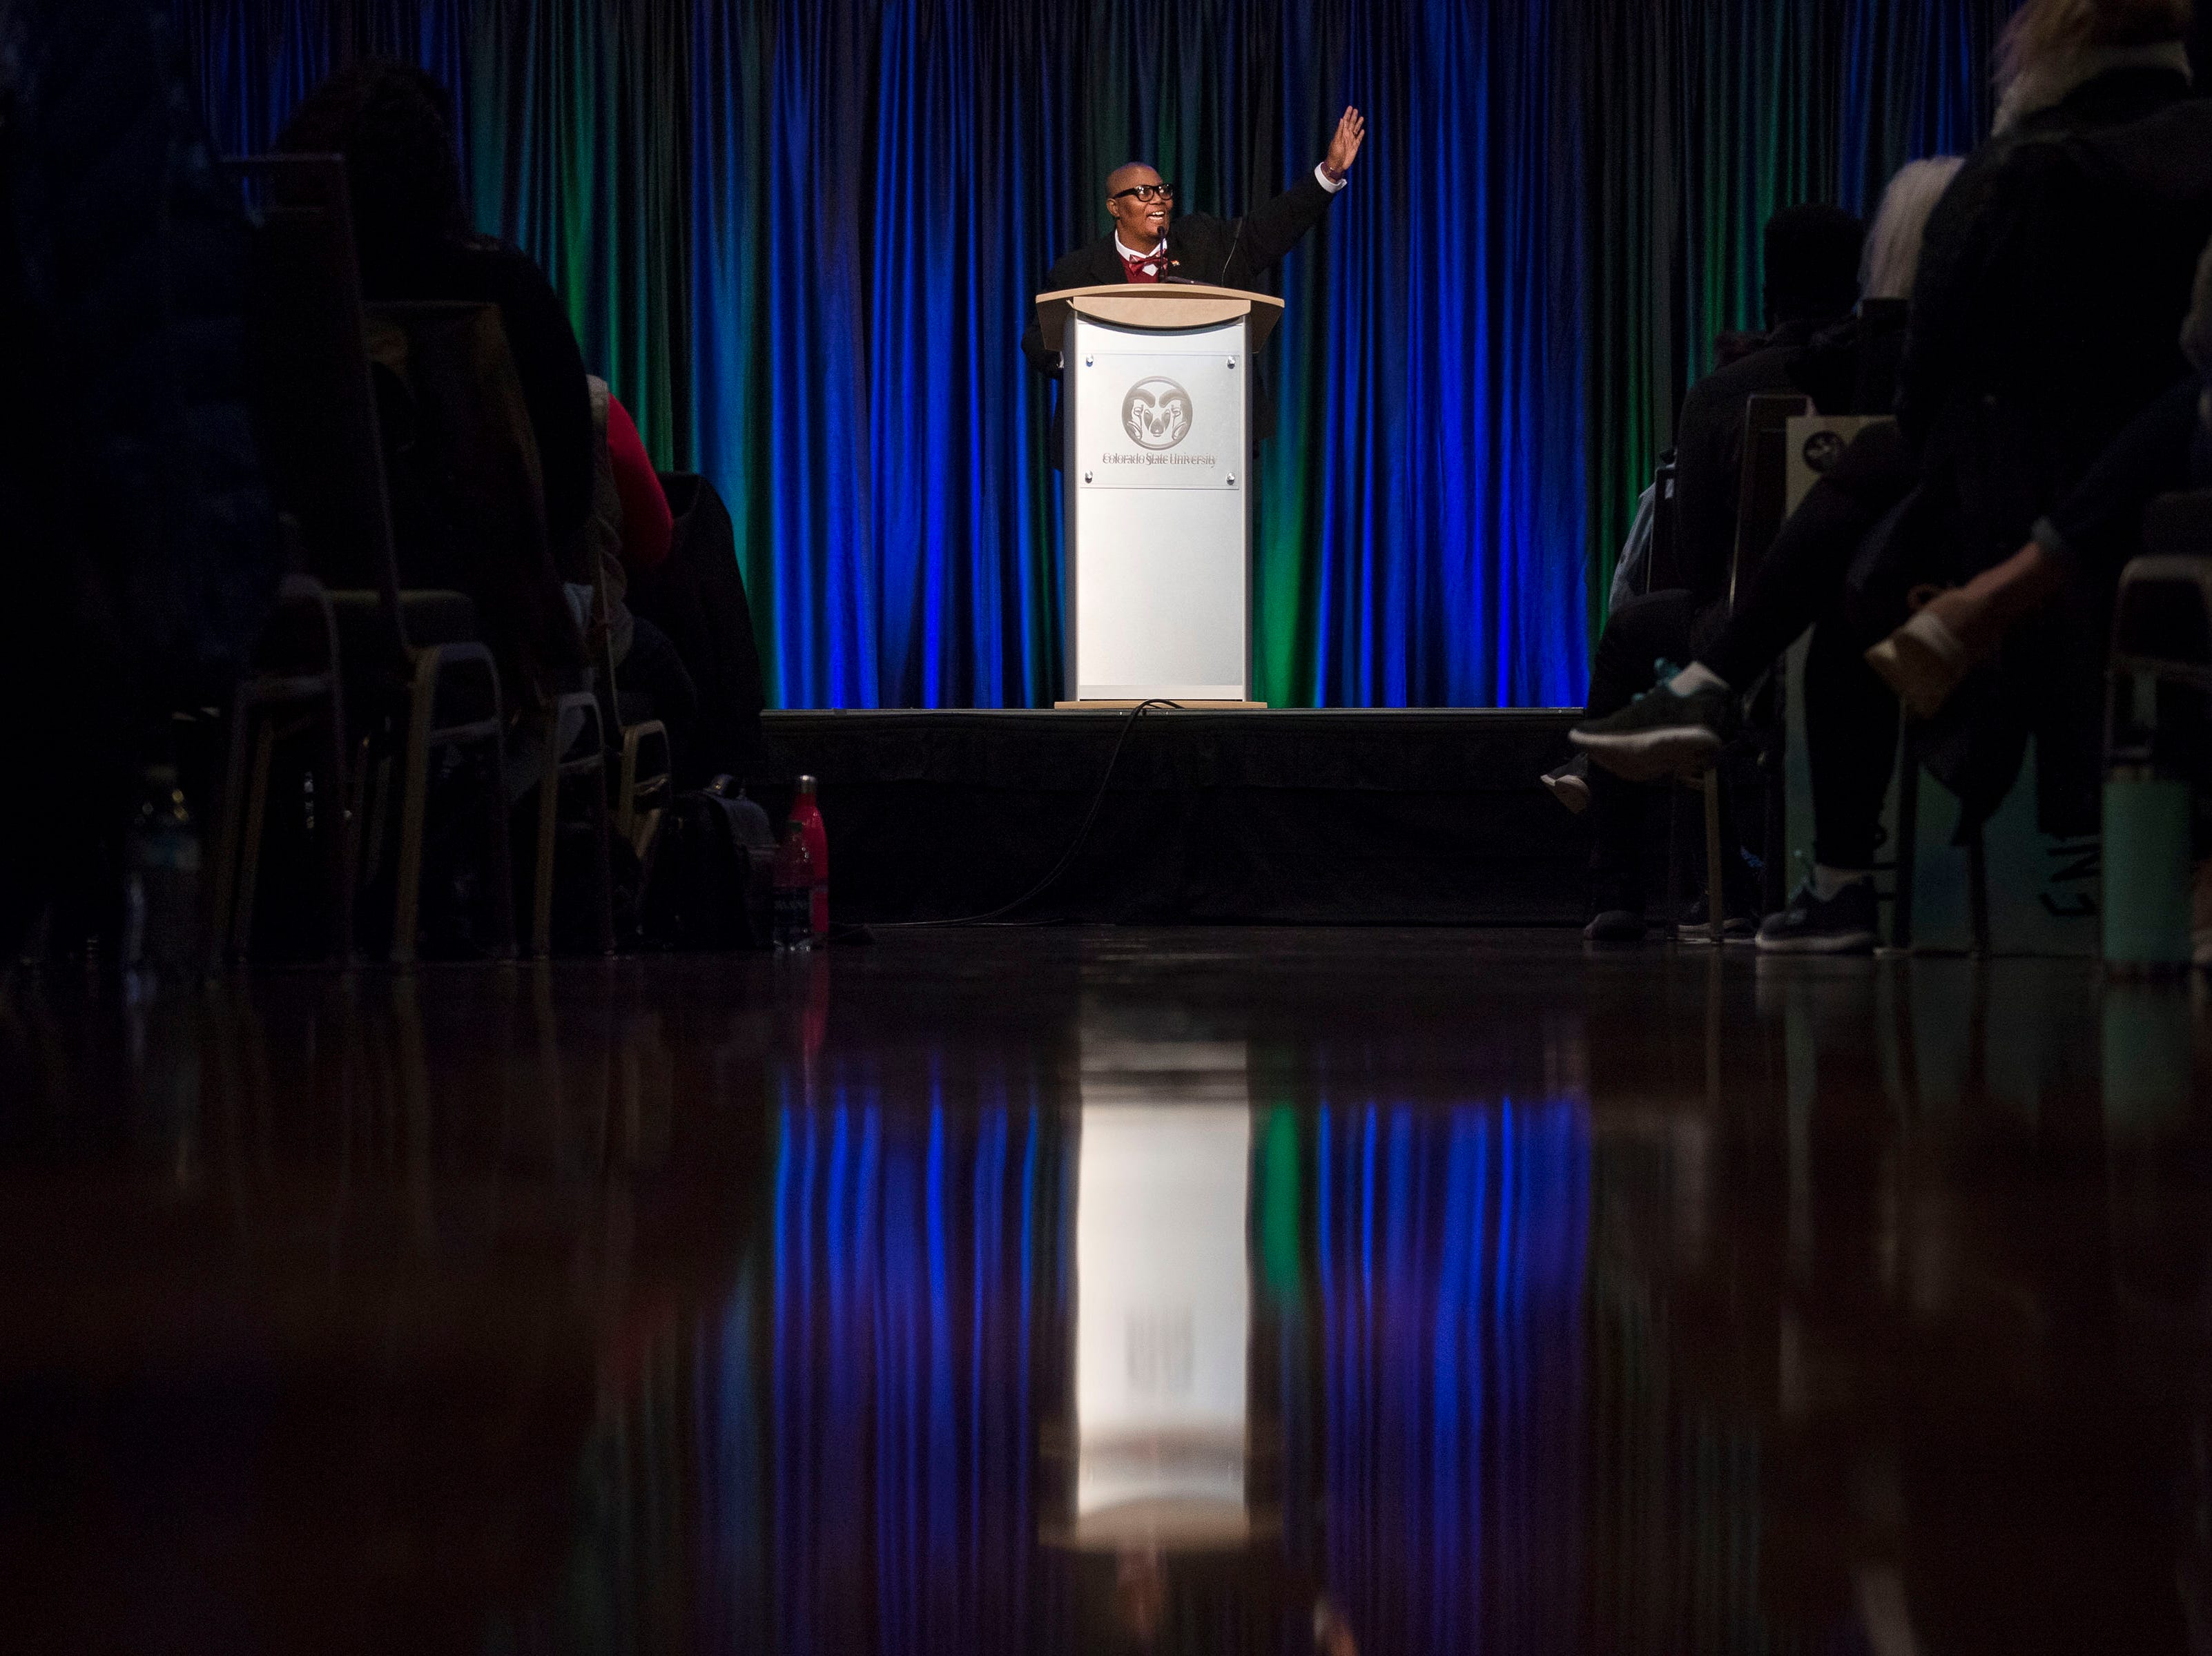 Dr. Martin Luther King, Jr. March & Celebration keynote speaker Fleurette King addresses the audience on Monday, Jan. 21, 2019, at the Lory Student Center on the Colorado State University campus in Fort Collins, Colo.